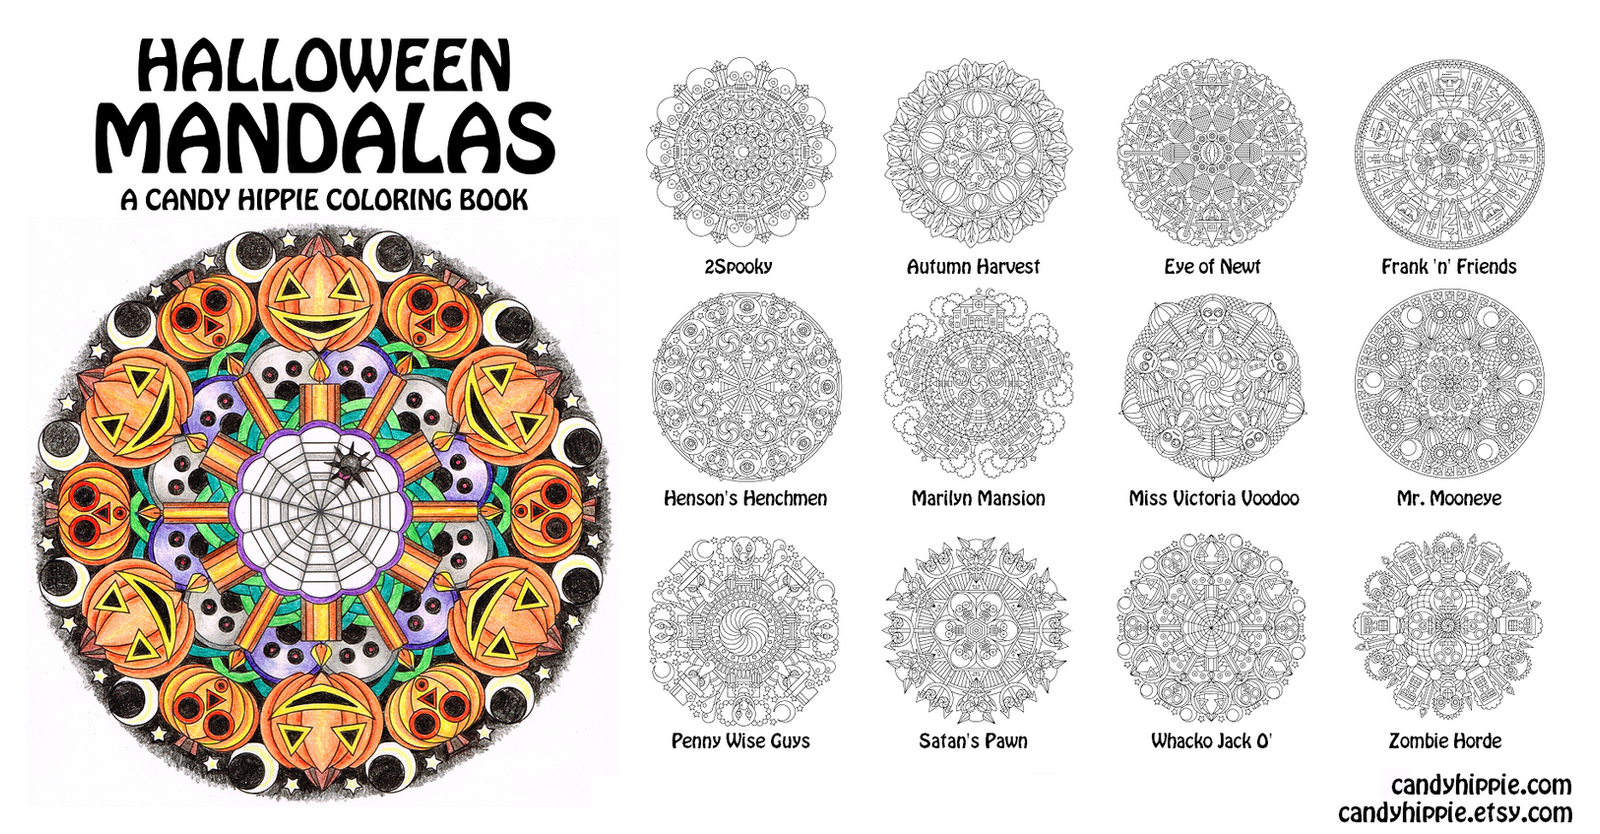 Halloween Mandalas adult coloring book by candyhippie on DeviantArt